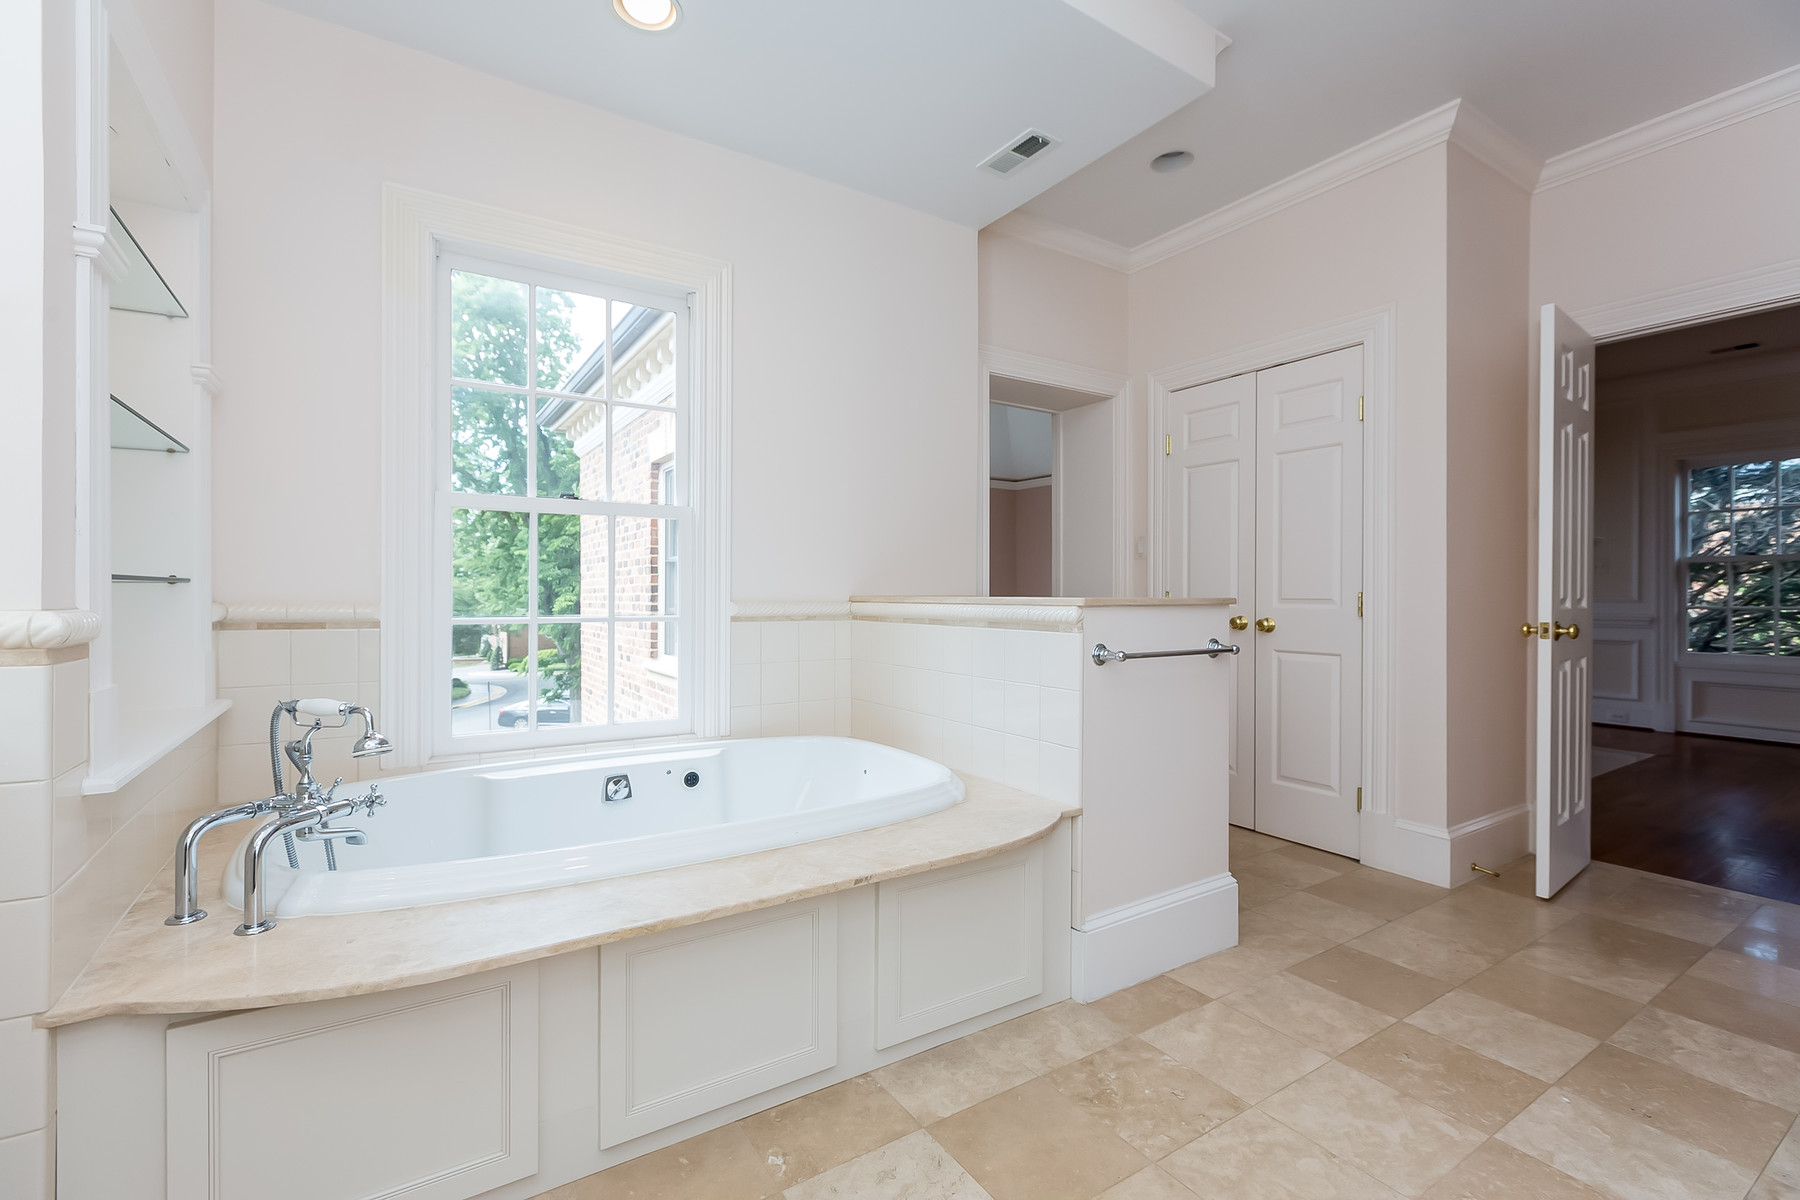 Additional photo for property listing at 1209 Stuart Robeson Drive, Mclean  McLean, Βιρτζινια 22101 Ηνωμενεσ Πολιτειεσ